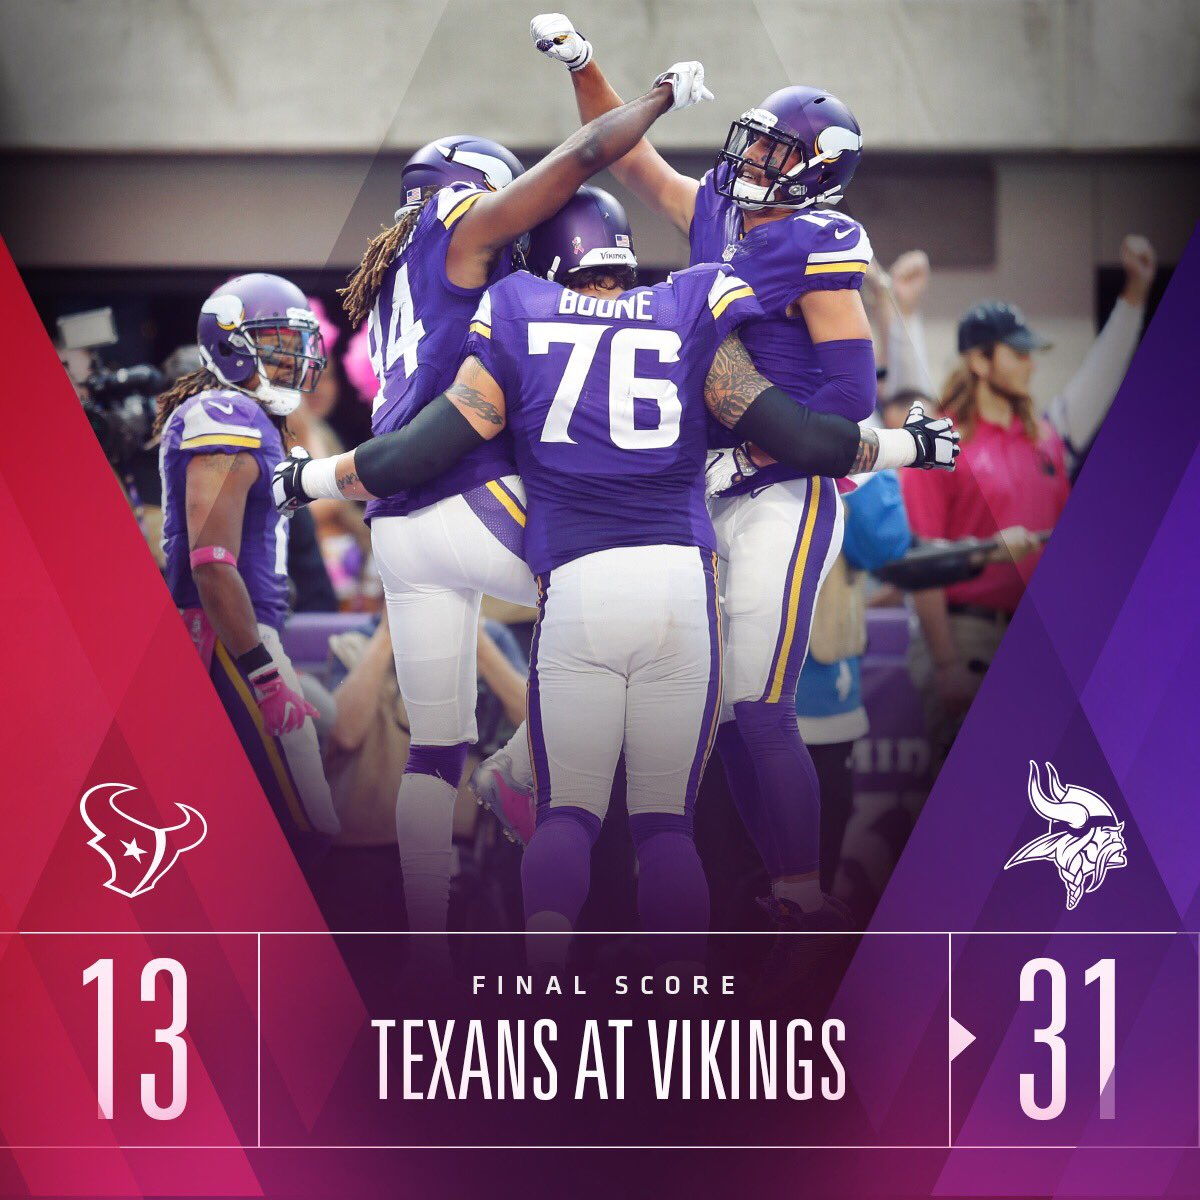 5-0. #Skol https://t.co/6frxhYYkxH